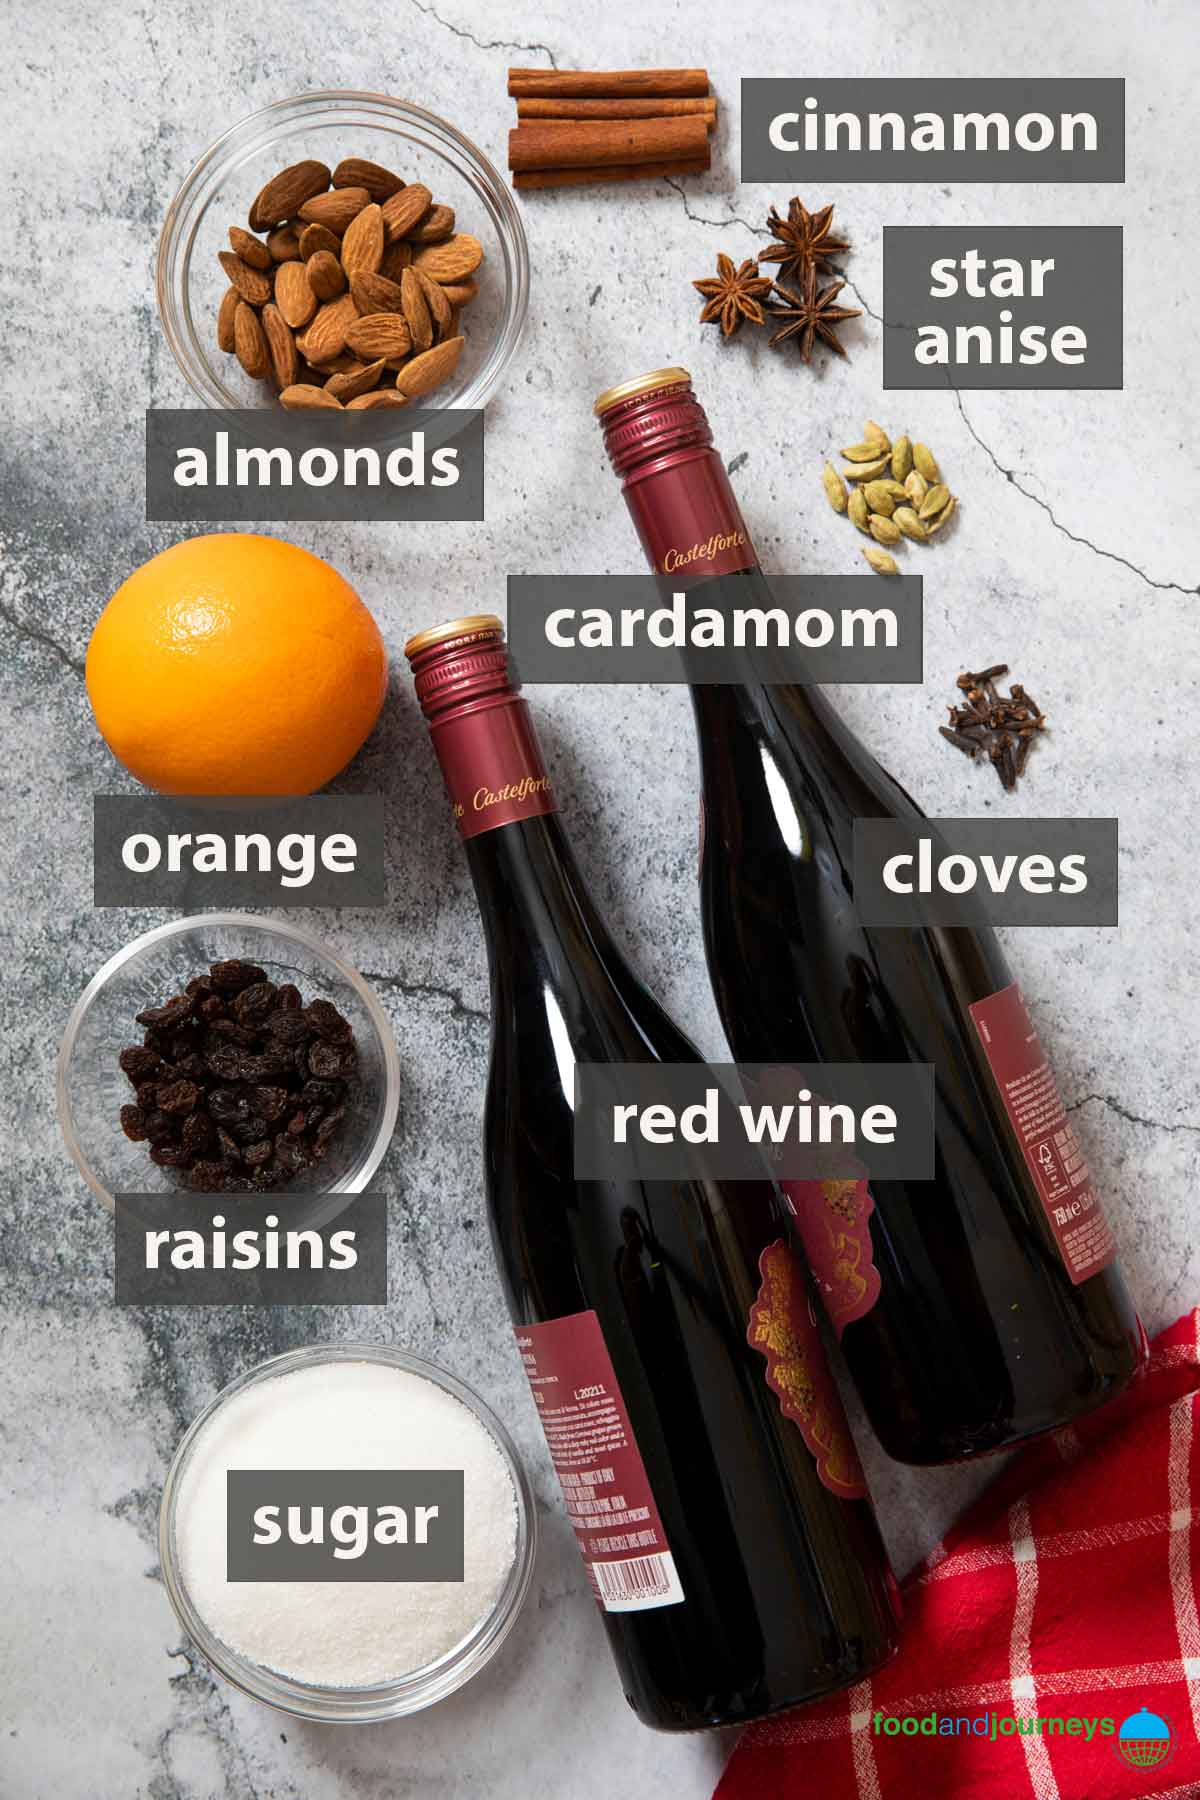 An image showing all the ingredients you need to prepare glögg at home.